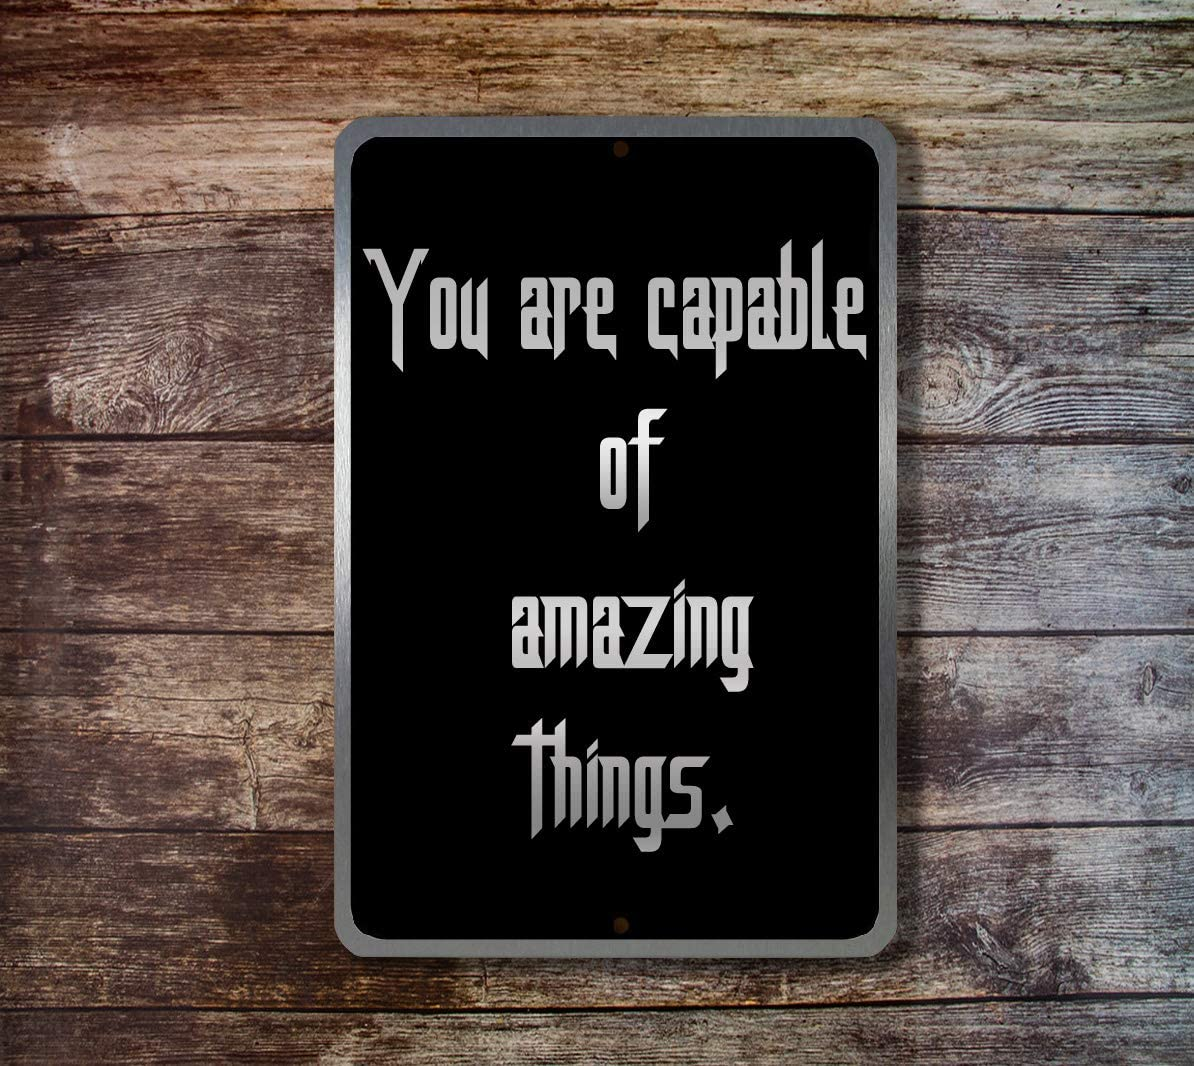 Yilooom You are Capable of Amazing Things Aluminum Metal Sign Novelty Wall Plaque Vintage Wall Art Inspirational Quotes Home Decor Accessories Gifts - 6 x 9 Inches